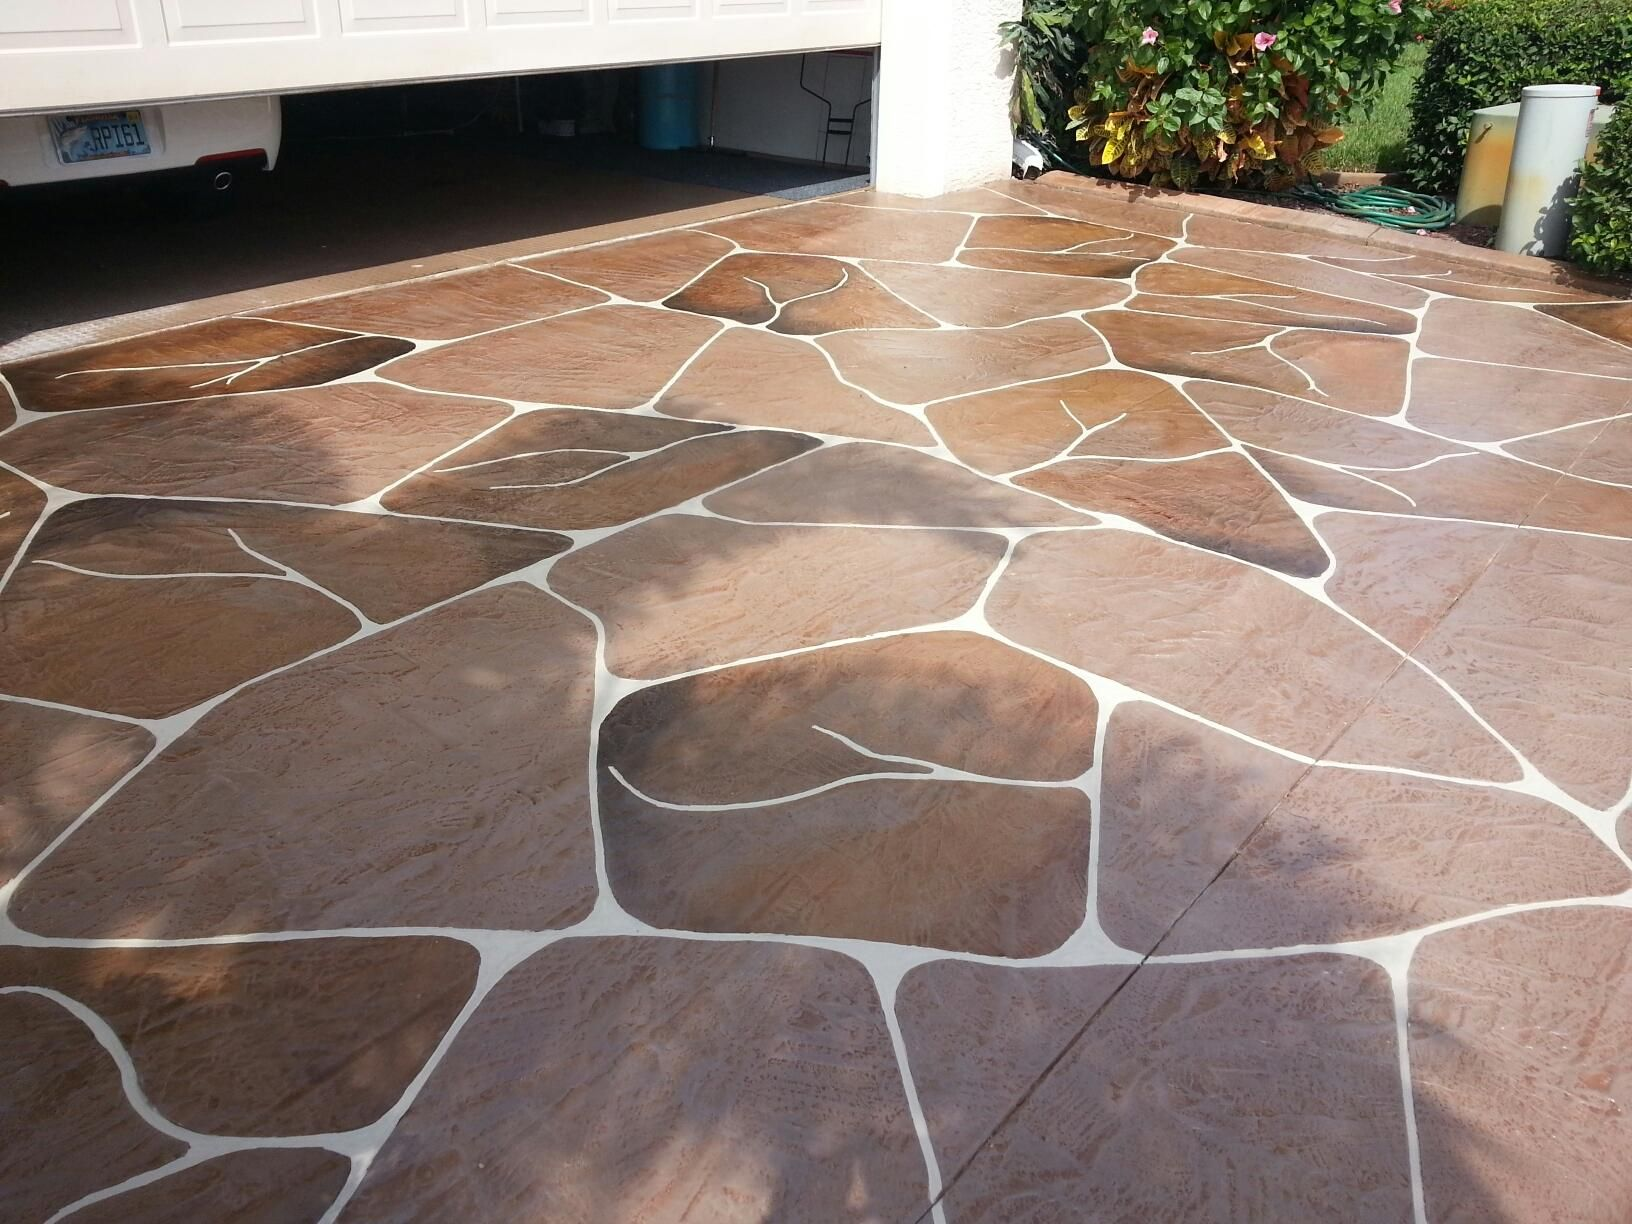 Decorative Concrete Driveway In Fort Myers Florida Learn More At